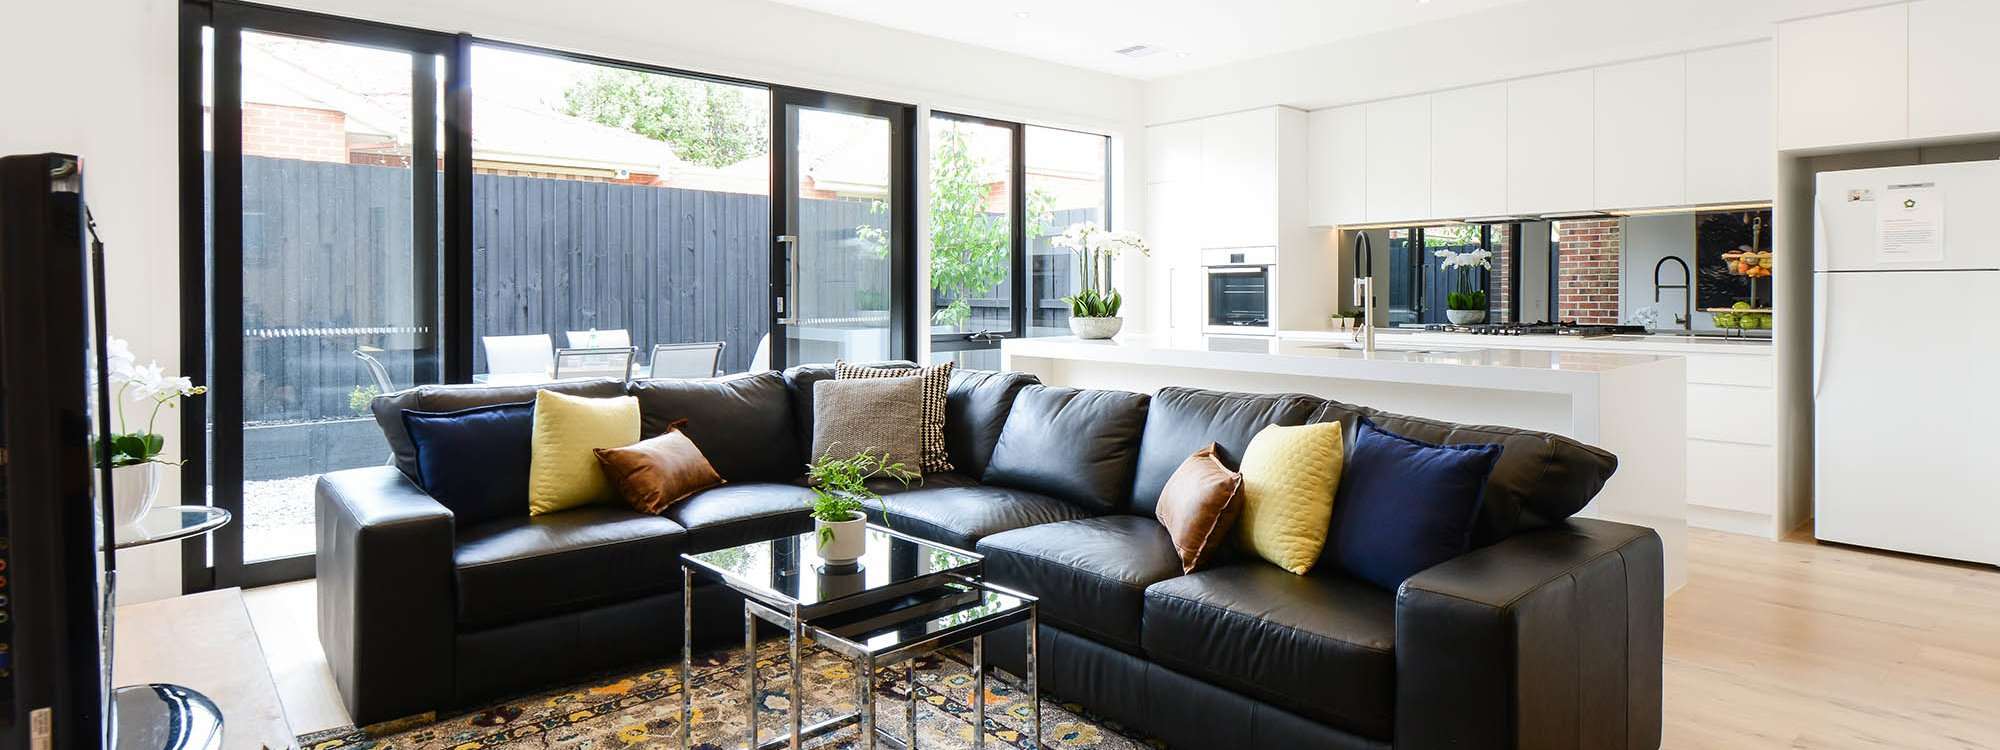 Murrumbeena Place 1 - Murrumbeena - Living Area b